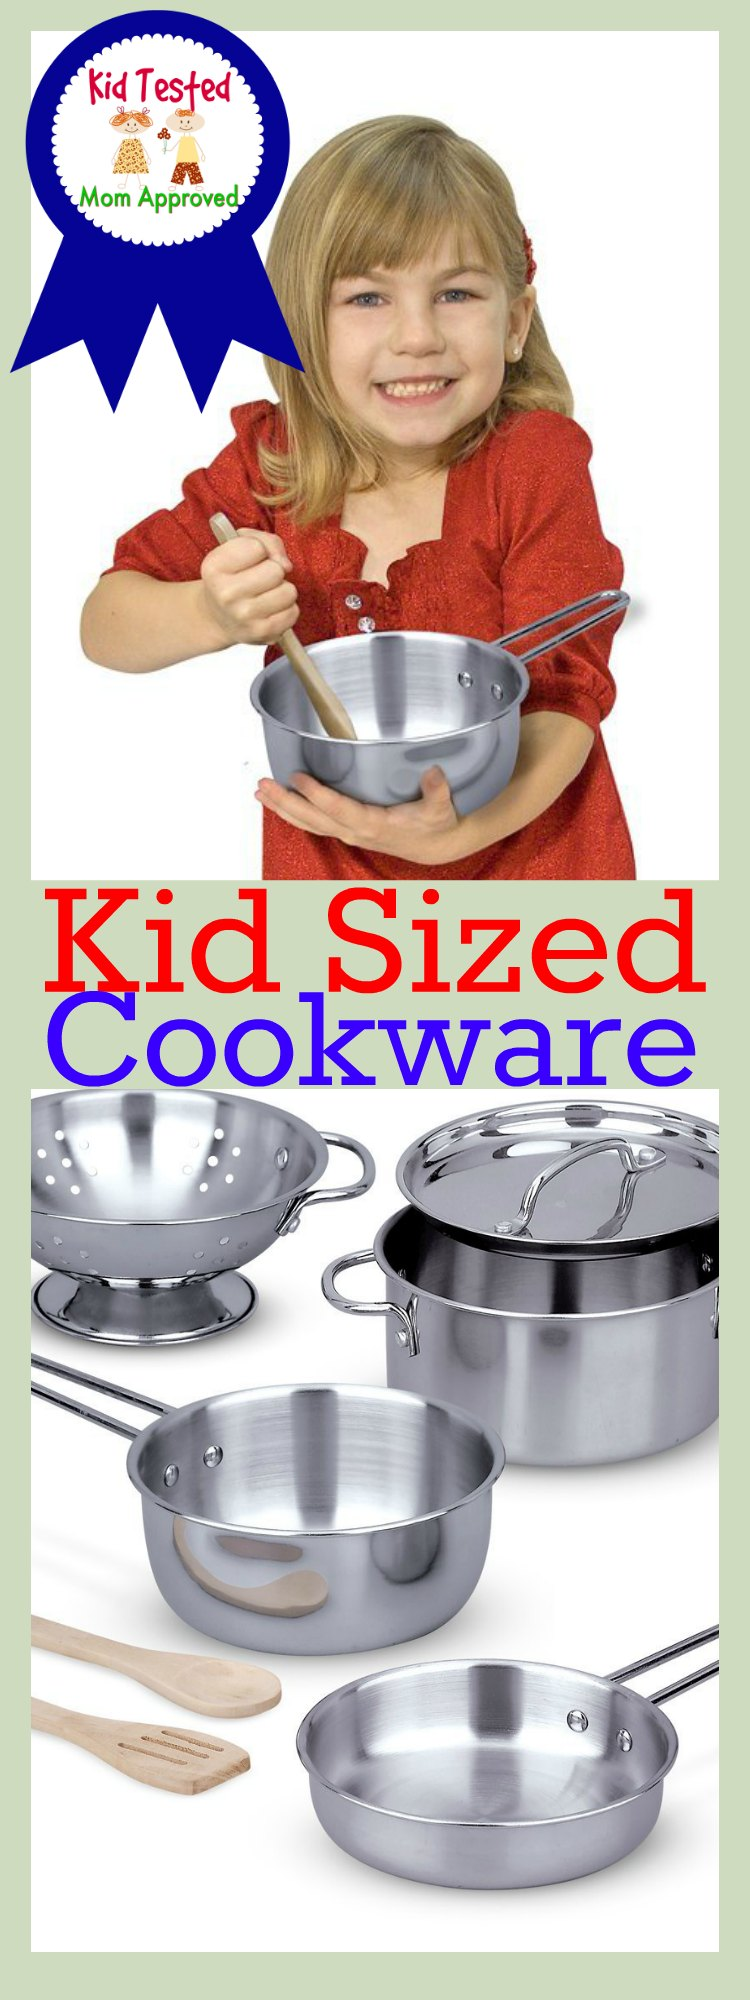 Cook Set For Kids Pots And Pans Play Set Get Ready To Cook